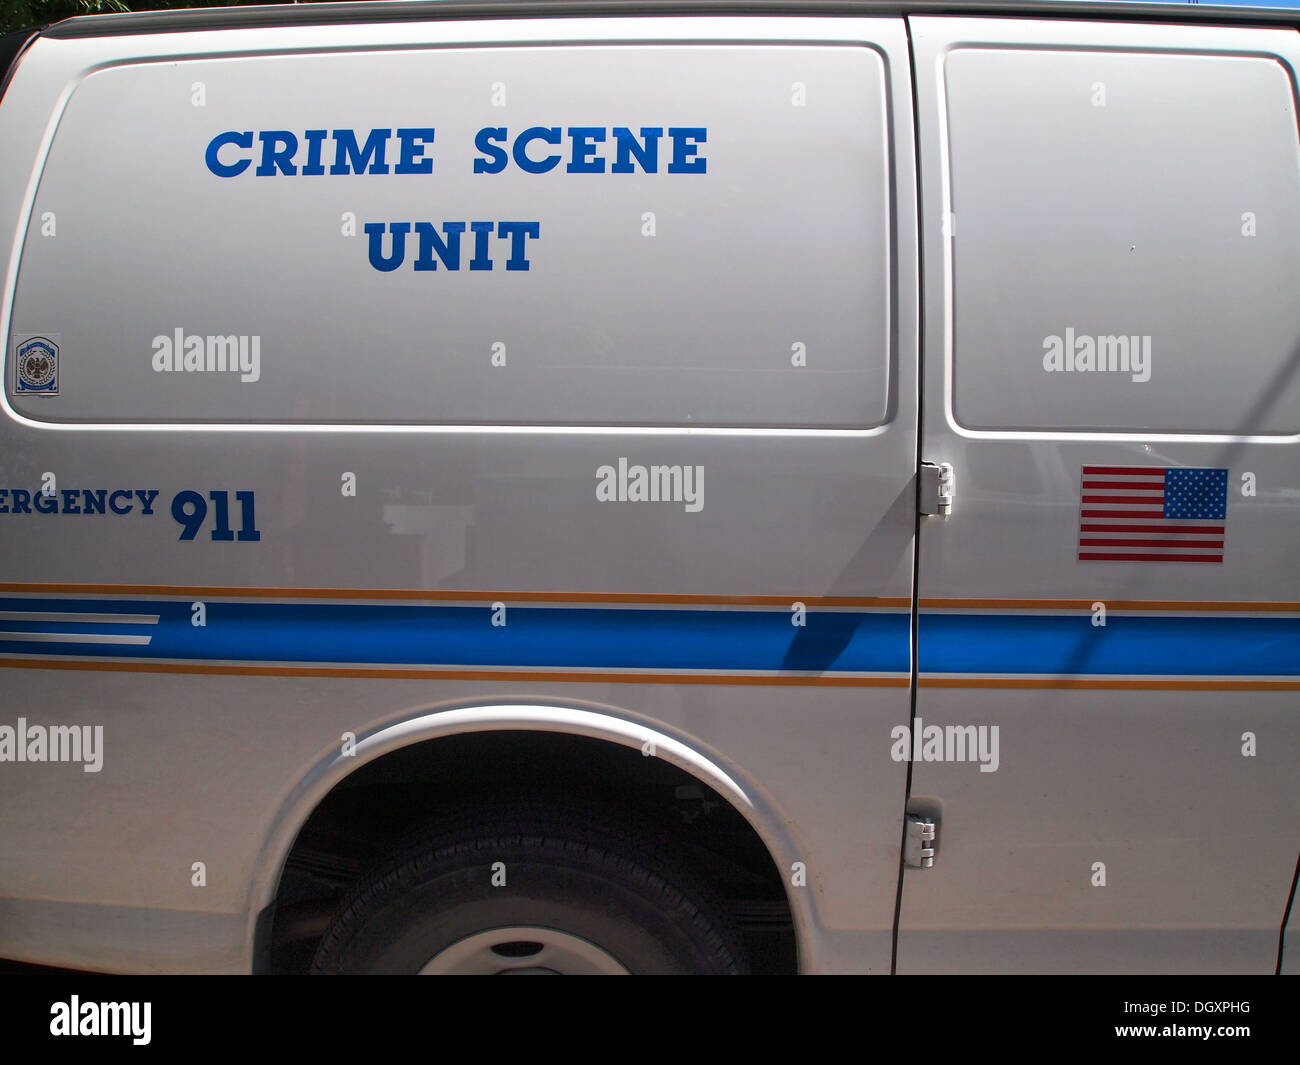 Crime Scene Unit vehicle of the Nashville Metropolitan Police Department, Nashville, Tennessee, USA - Stock Image